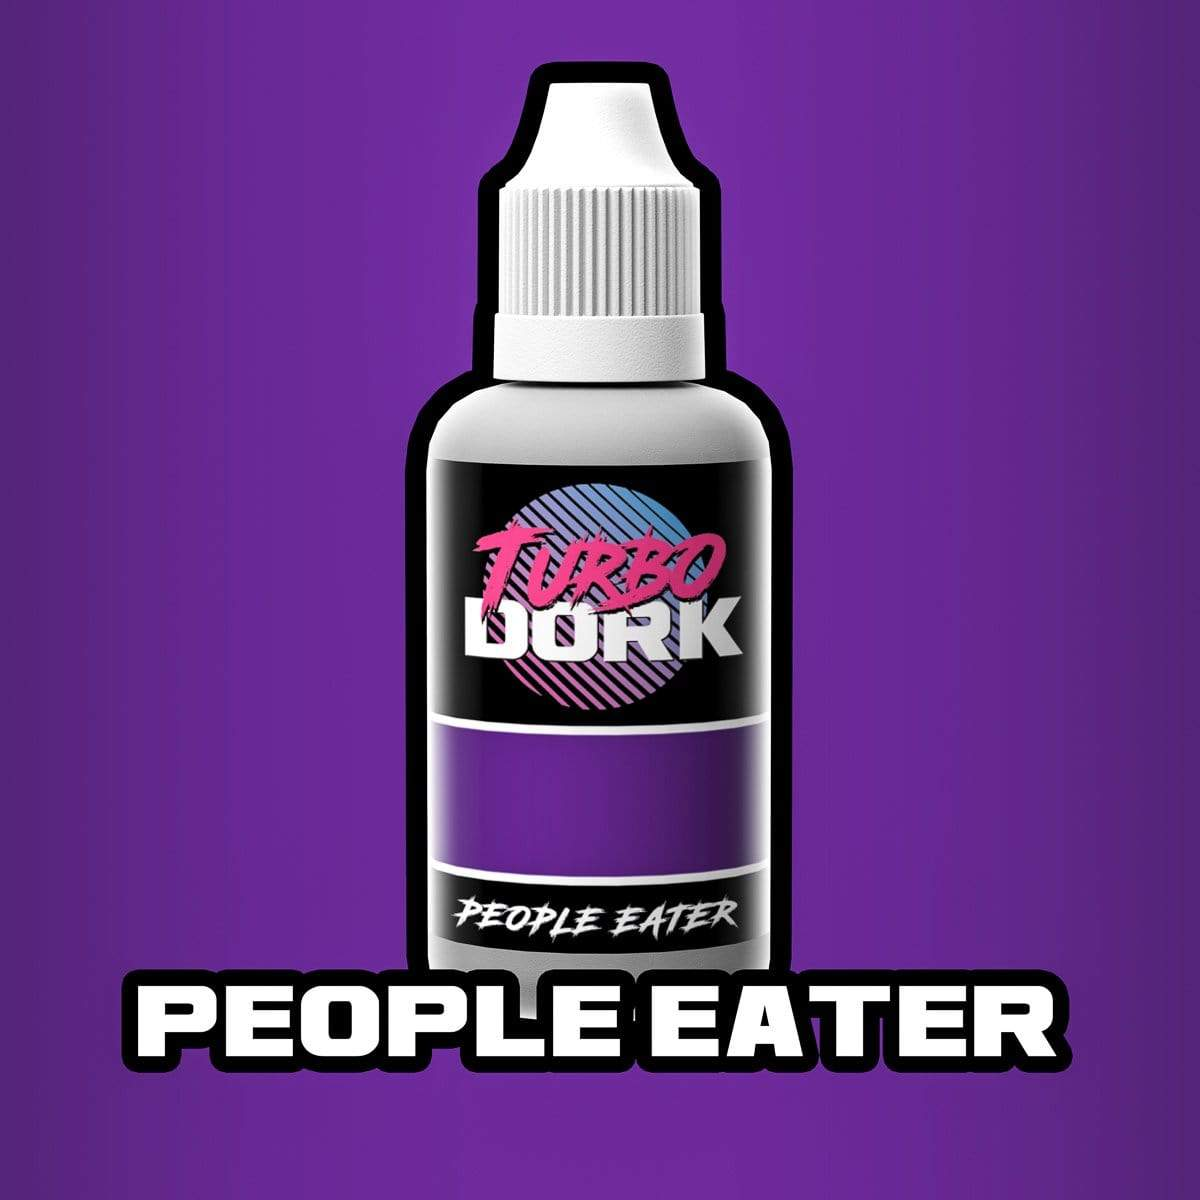 Turbo Dork 20ml Bottle People Eater Metallic Acrylic Paint